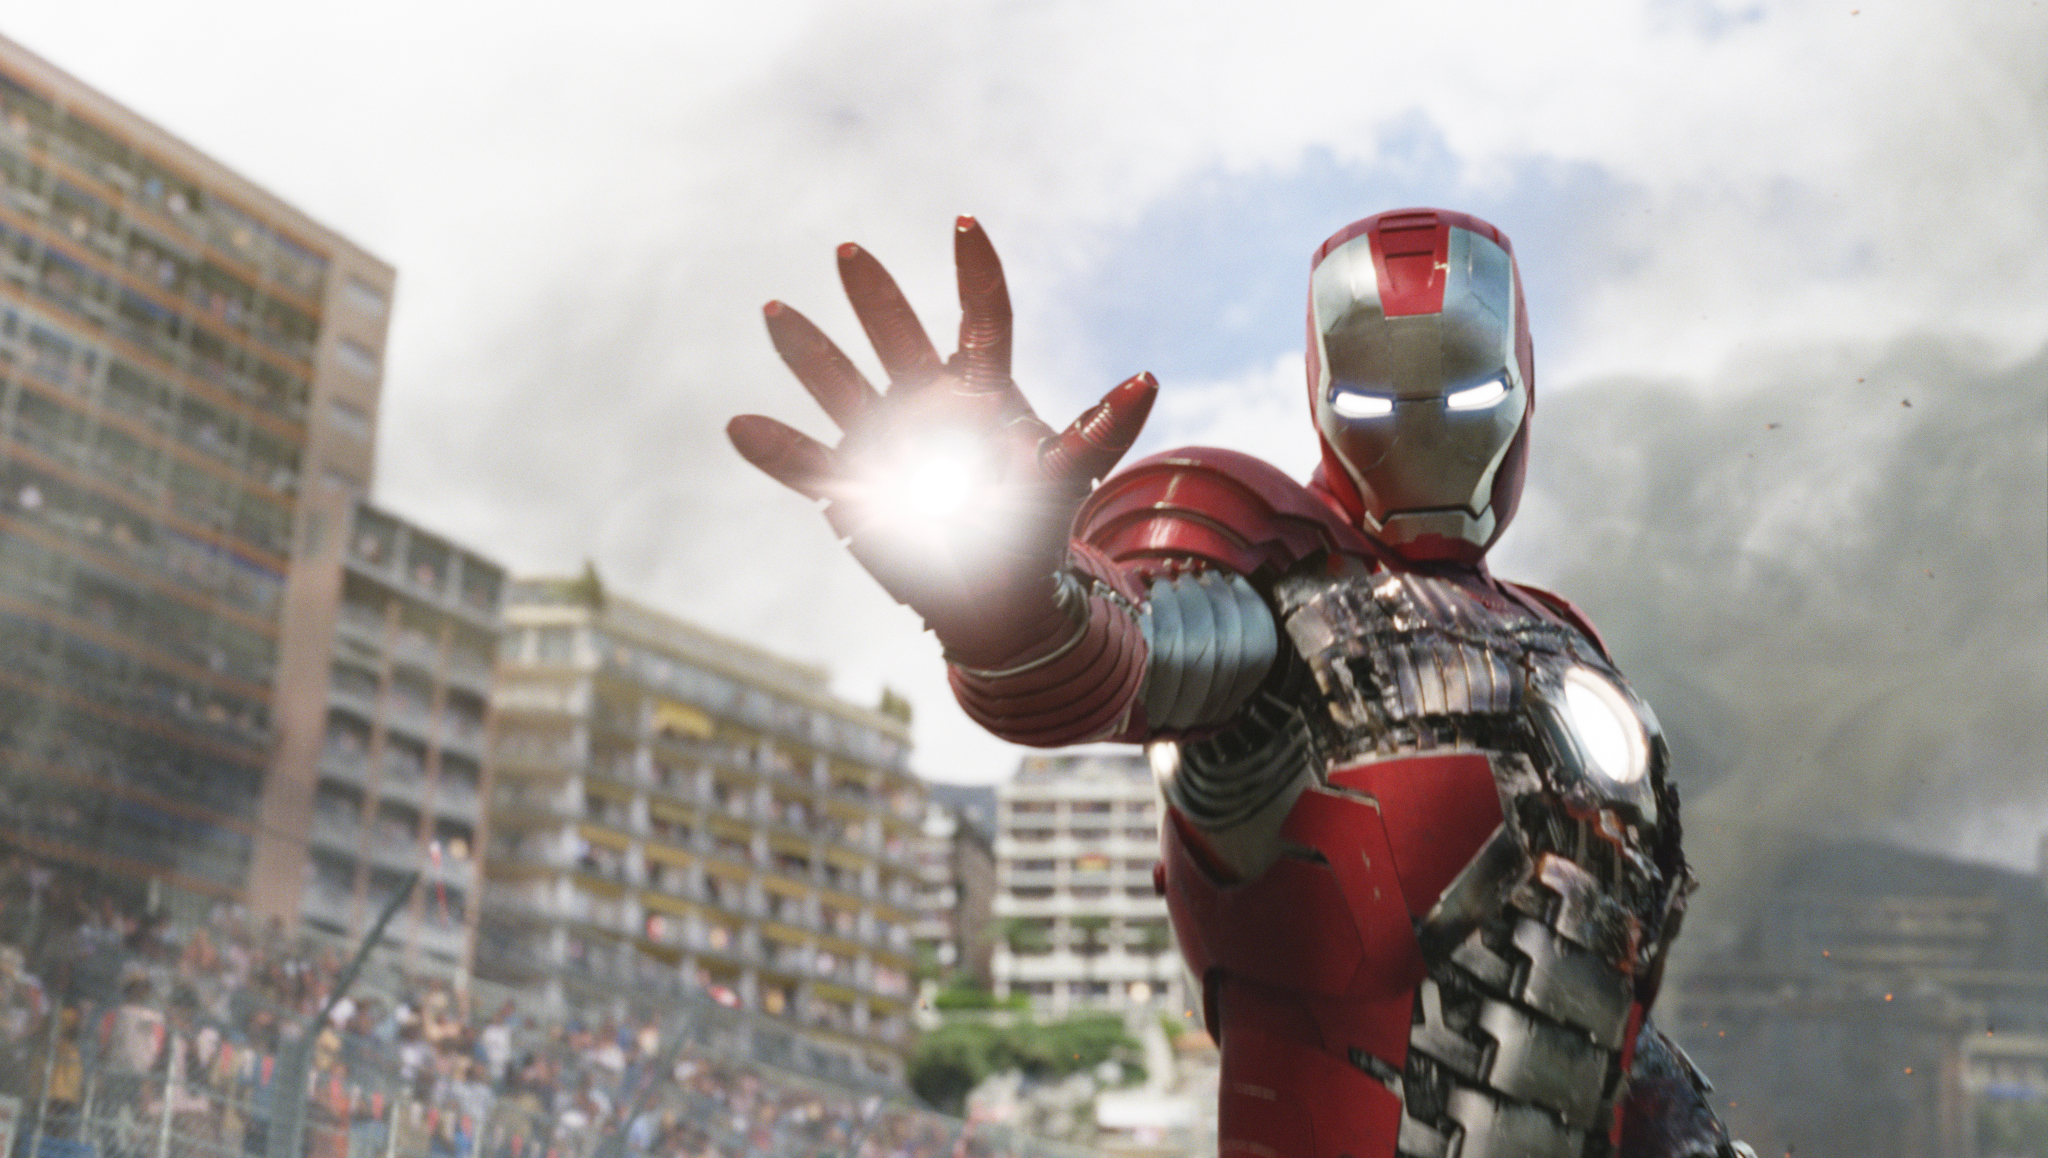 Iron Man Iron Man 2 Marvel Comics Superhero Tony Stark 2048x1158